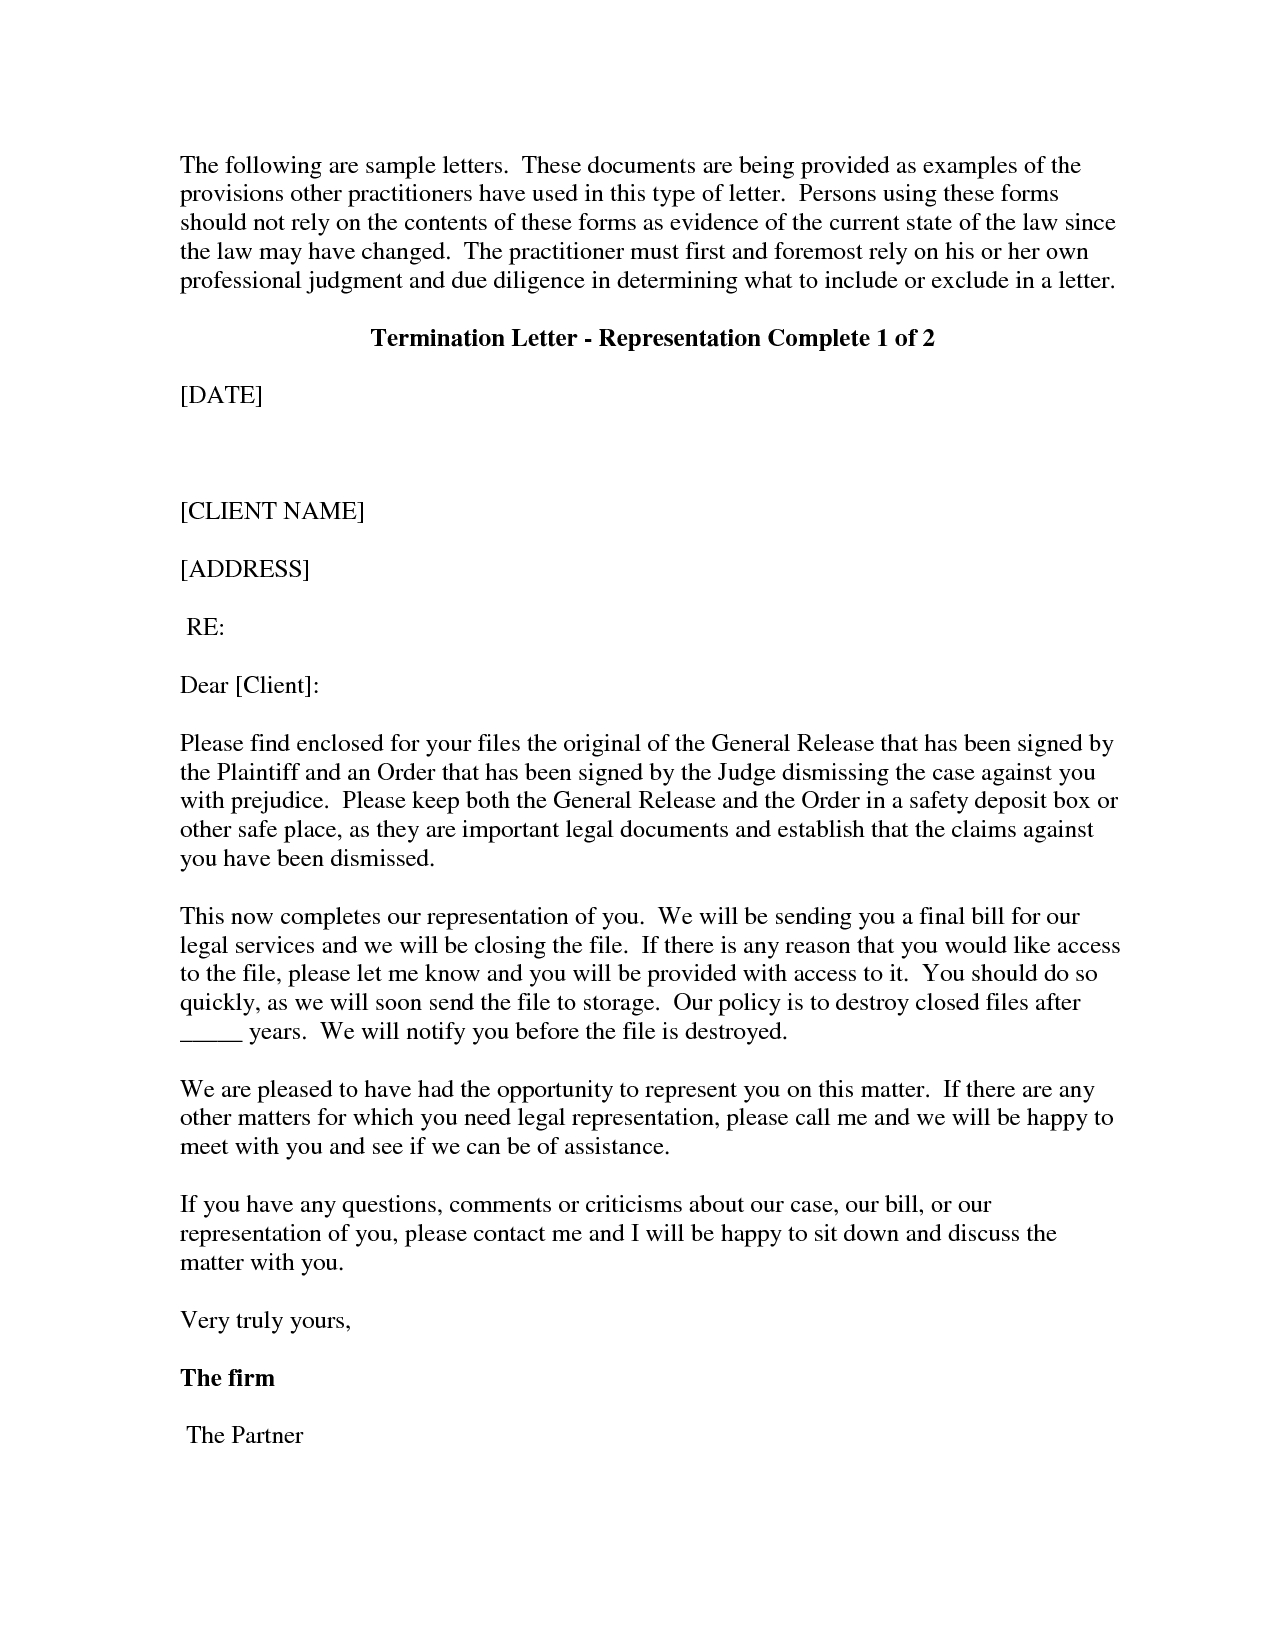 Attorney Termination Letter Template - Free Cover Letter Templates Sample attorney Termination Letter